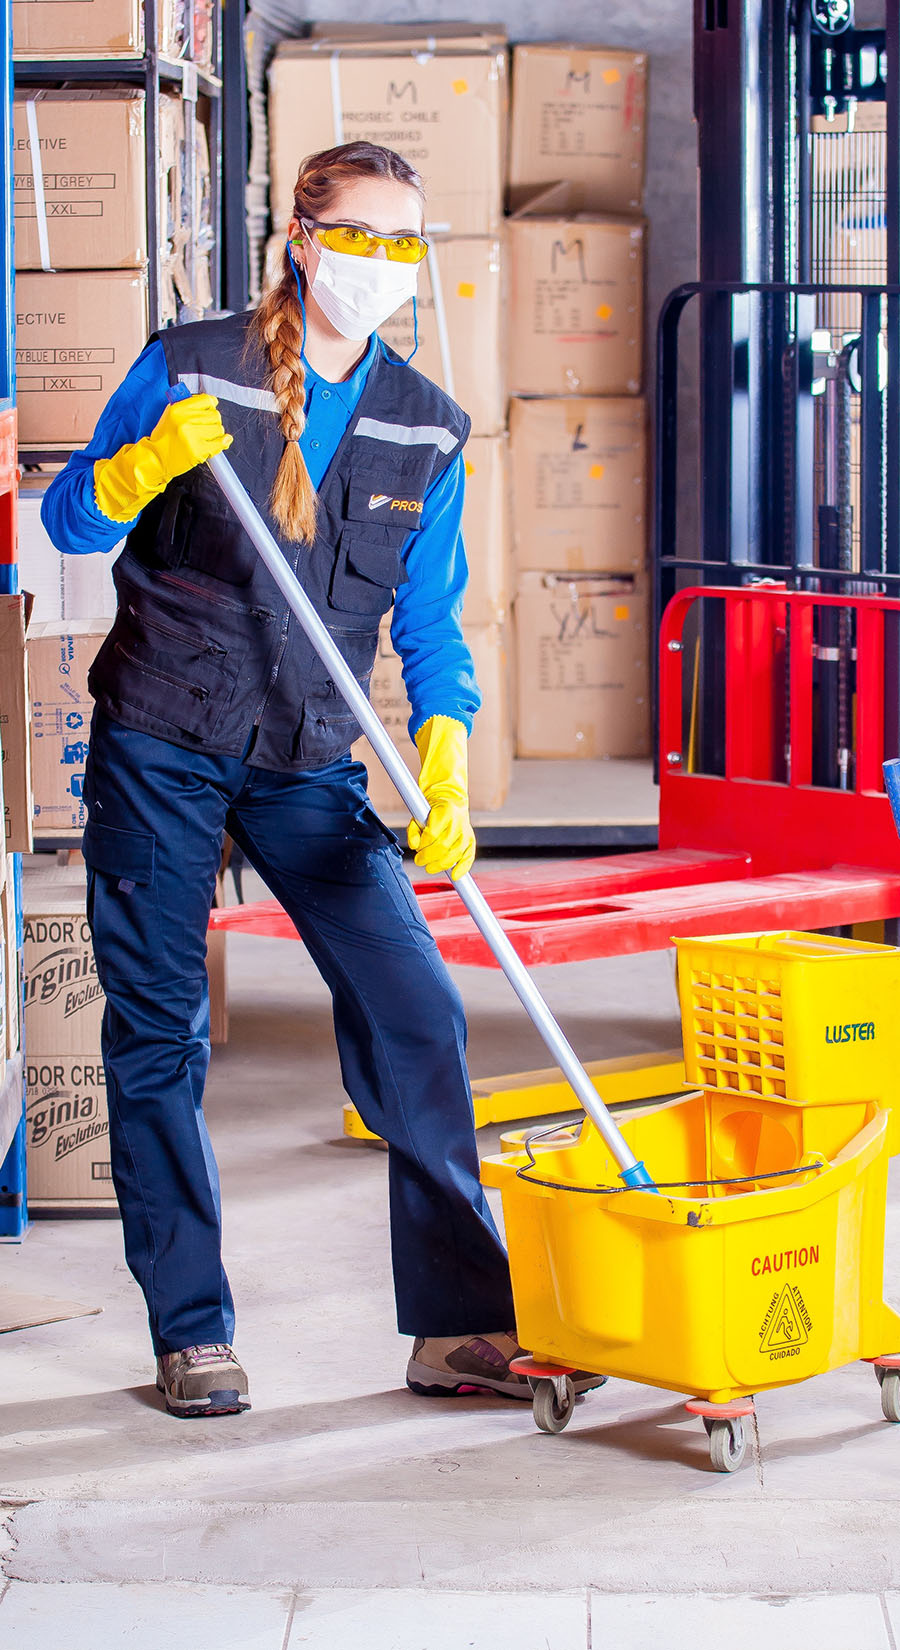 Professional Janitorial Services Bakersfield